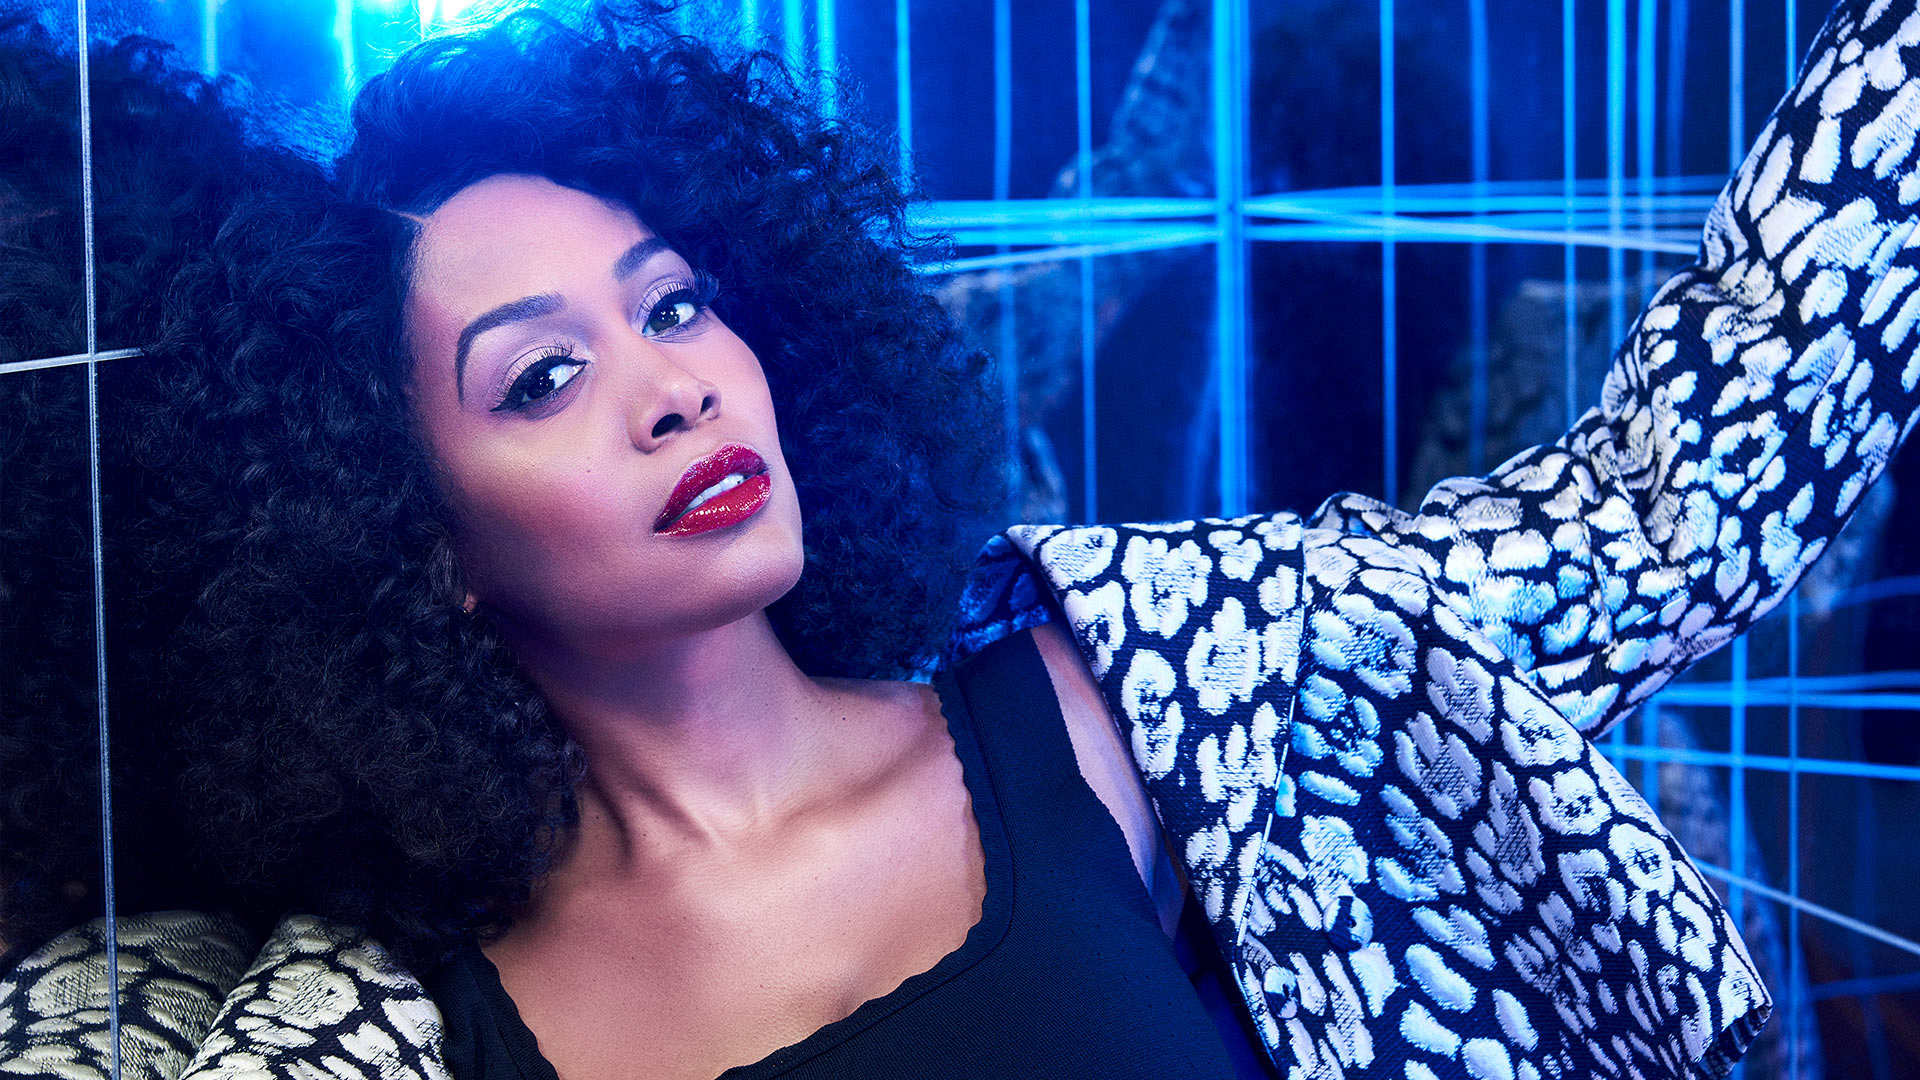 All Rise star Simone Missick rules the courtroom—and the fashion closet!